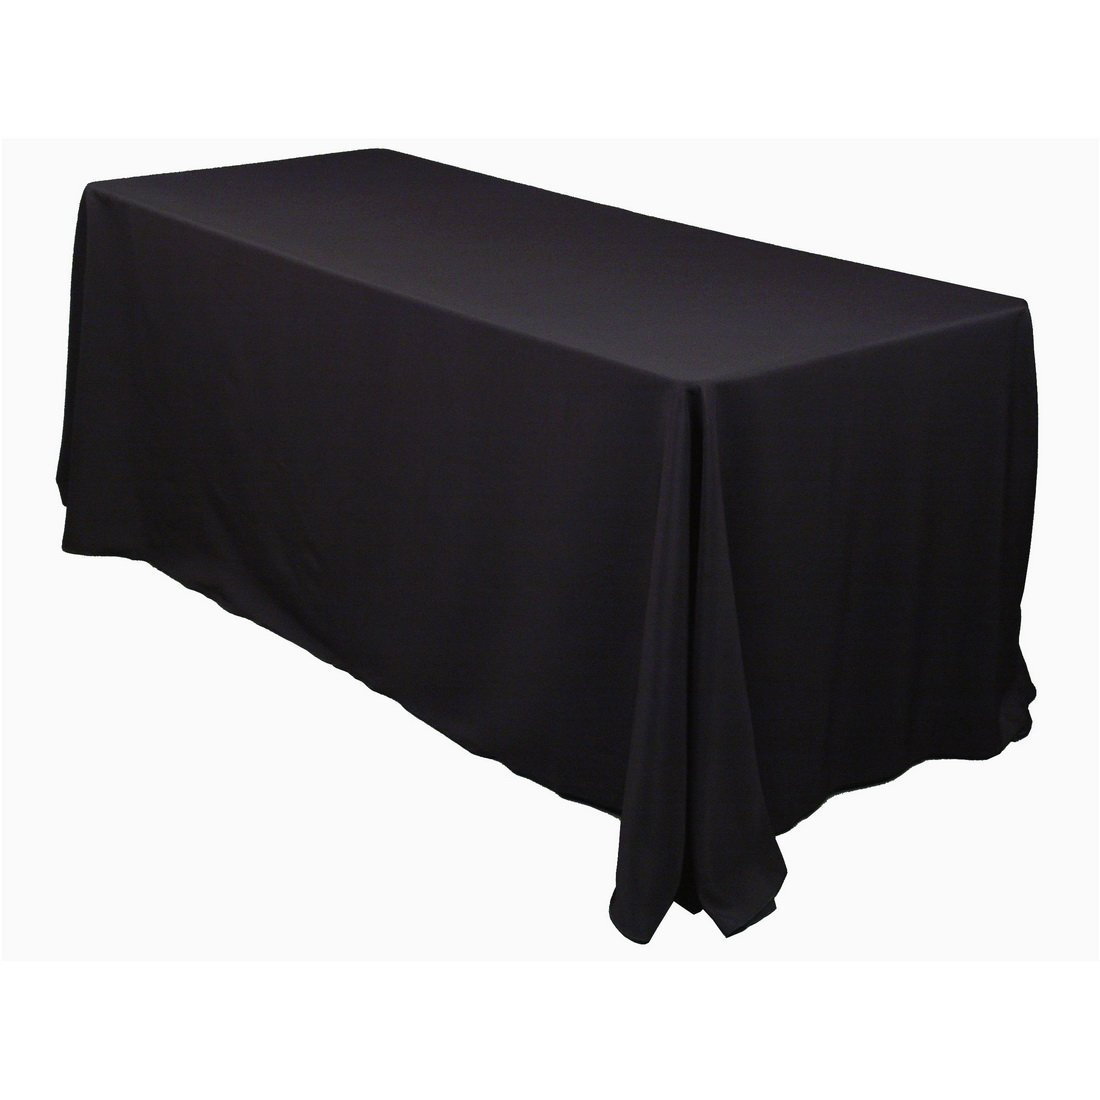 Htovila Black Rectangular Polyester Kitchen Tablecloth, Perfect for 6 foot, Dinner Parties, Holidays, Everyday use, 90 x 126 Inches by Htovila (Image #1)